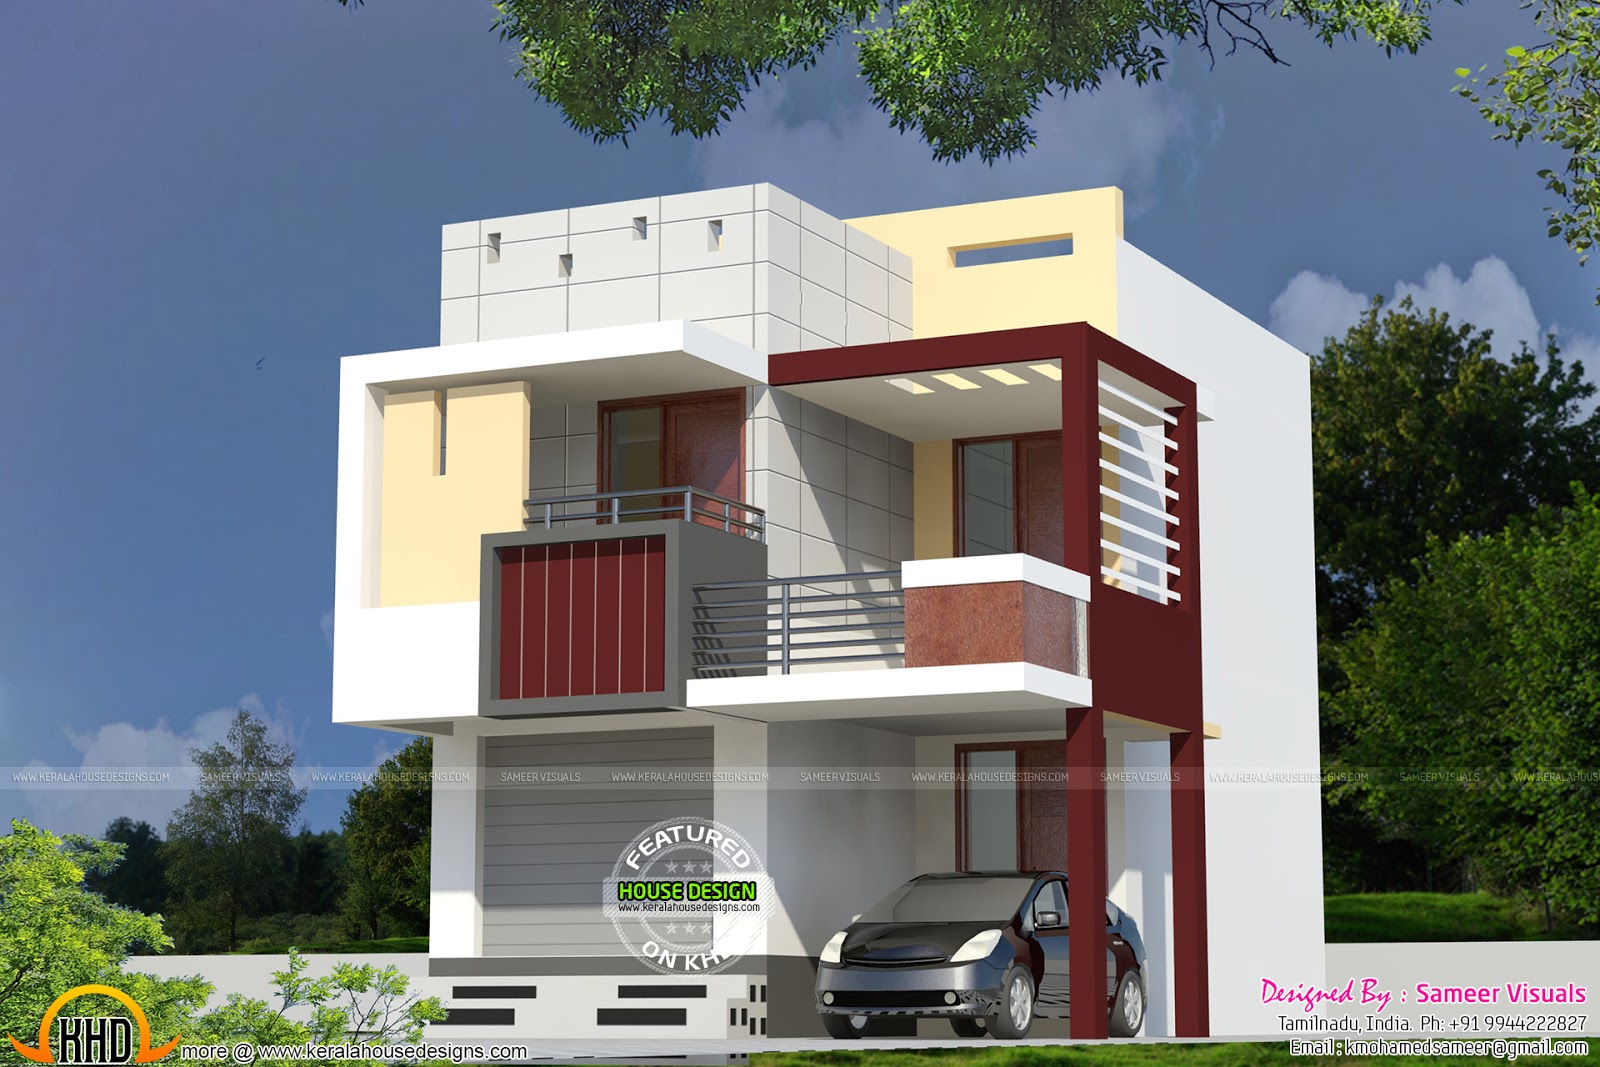 Very small double storied house Kerala home design and